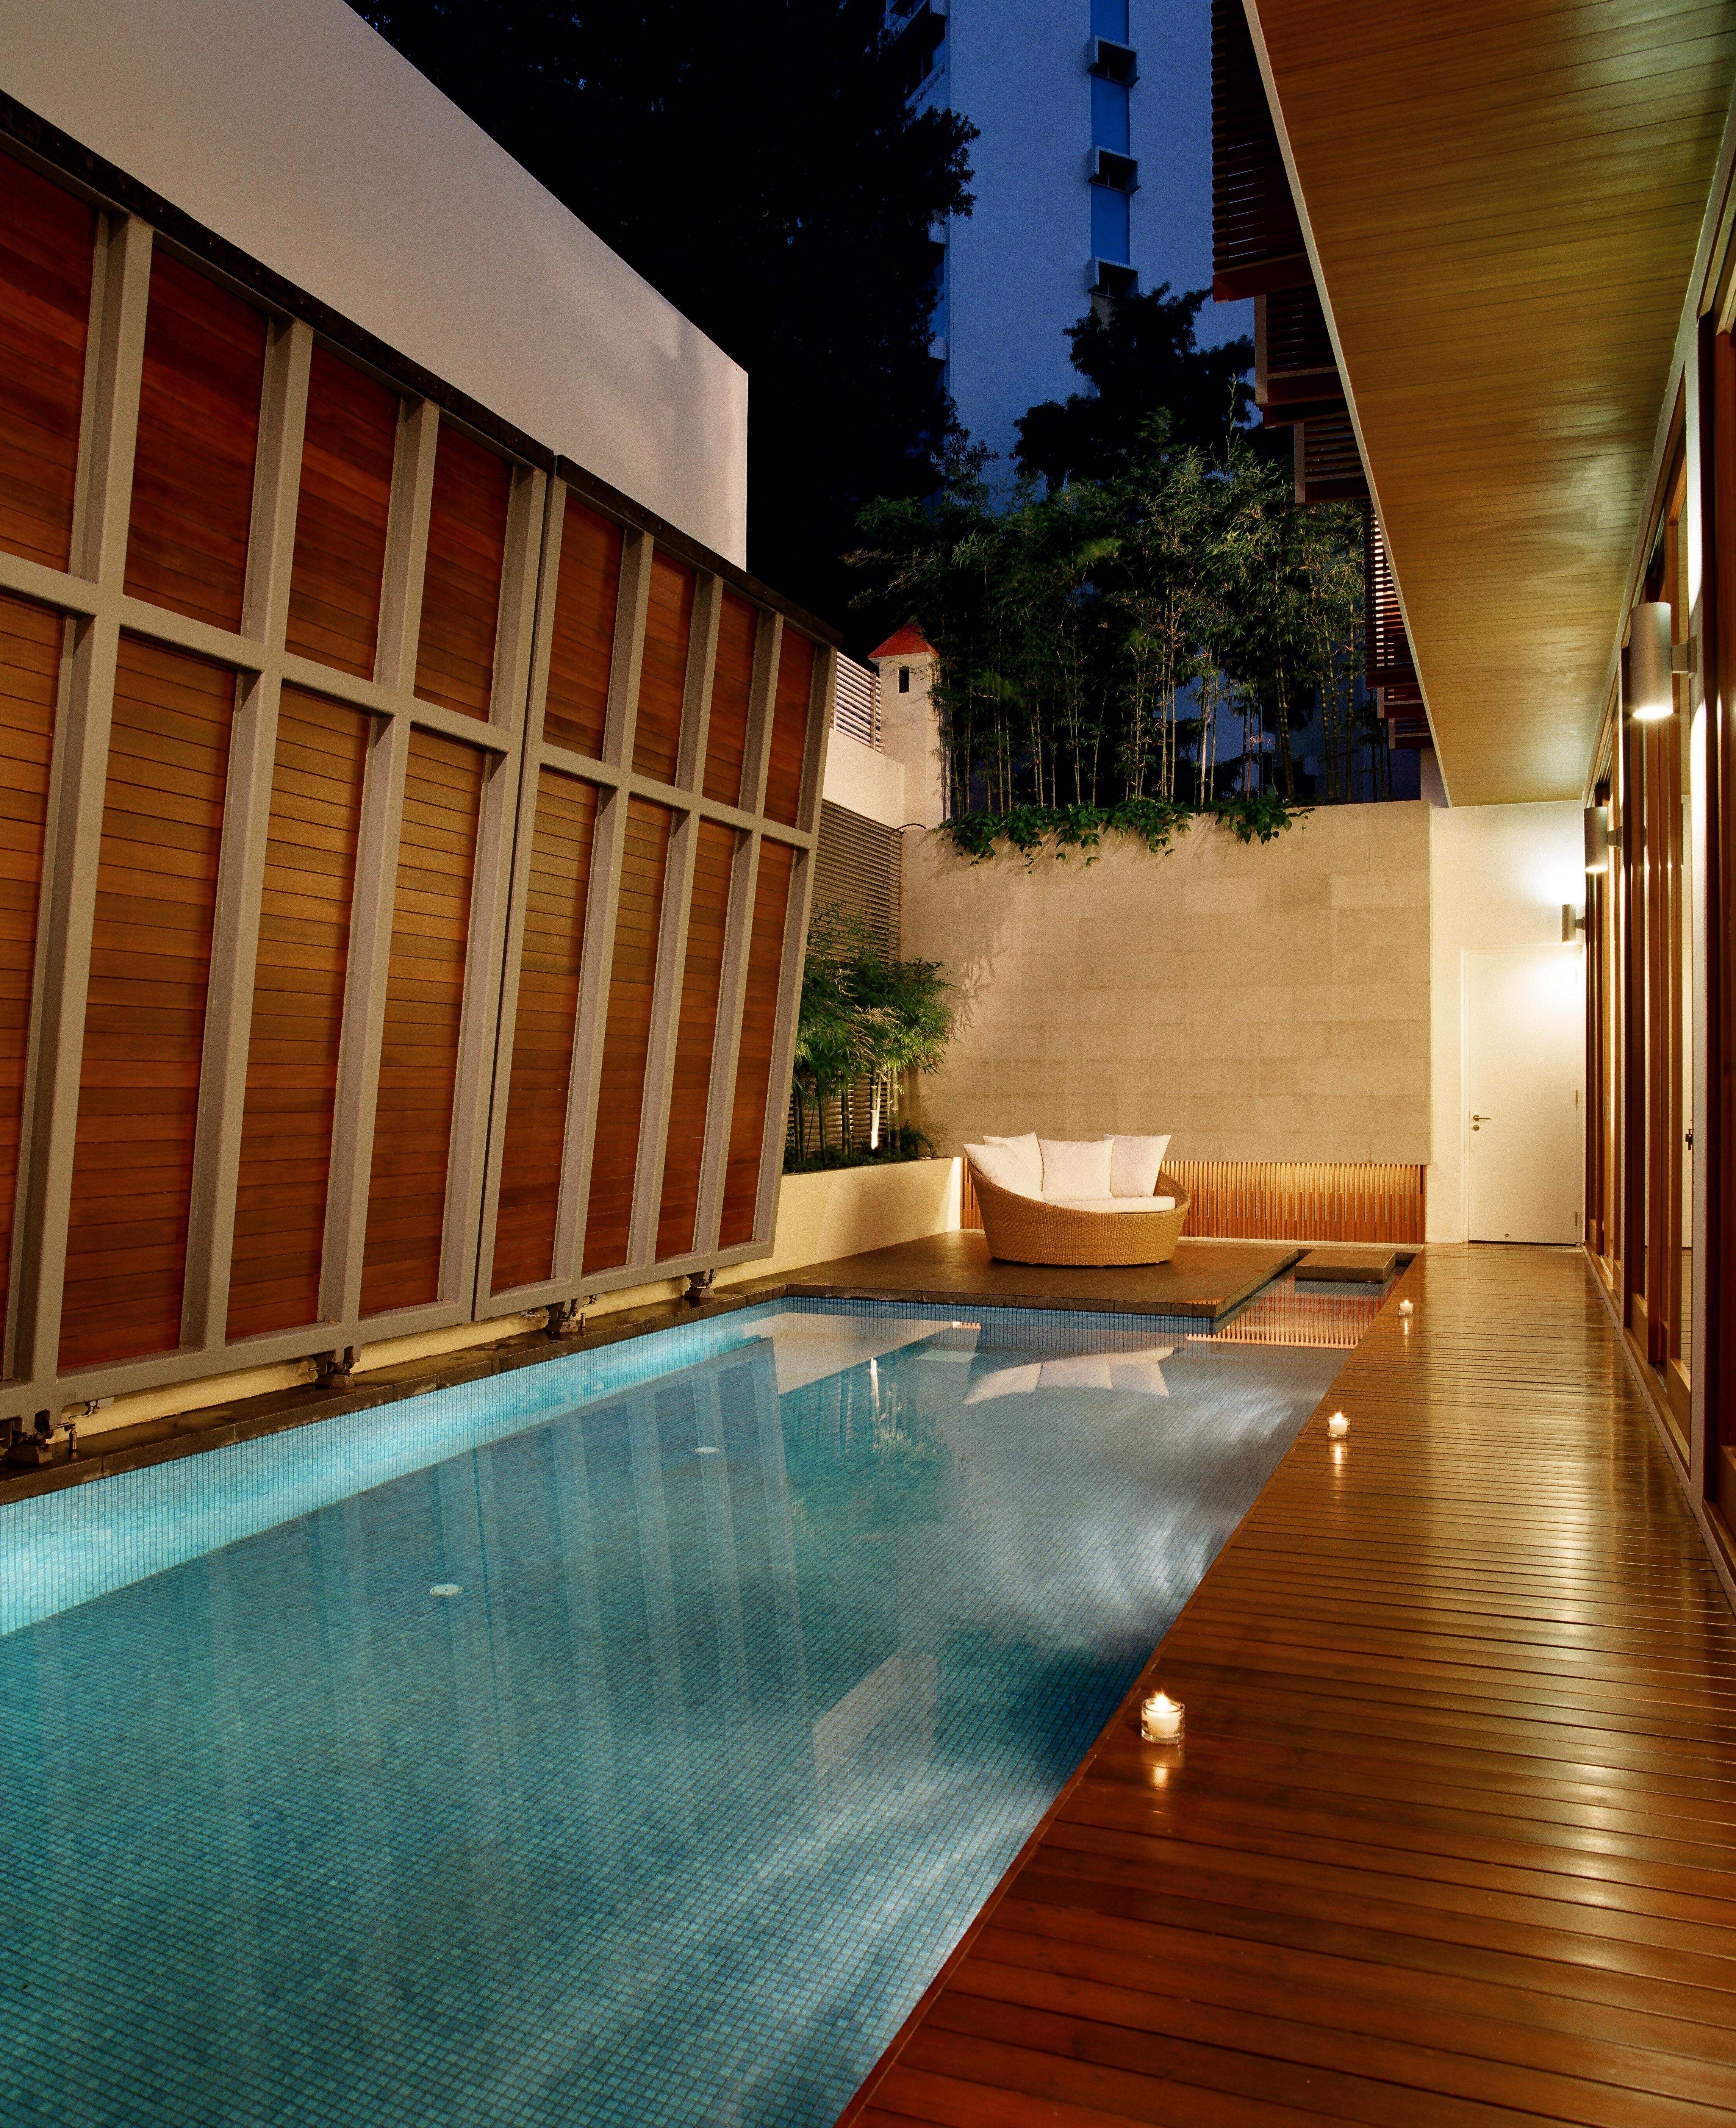 """At night, we see the inner courtyard illuminated by bi-directional sconces between the exterior glass panels, plus a row of candles placed next to the pool. The seating area at far end appears to """"float"""" upon the water."""